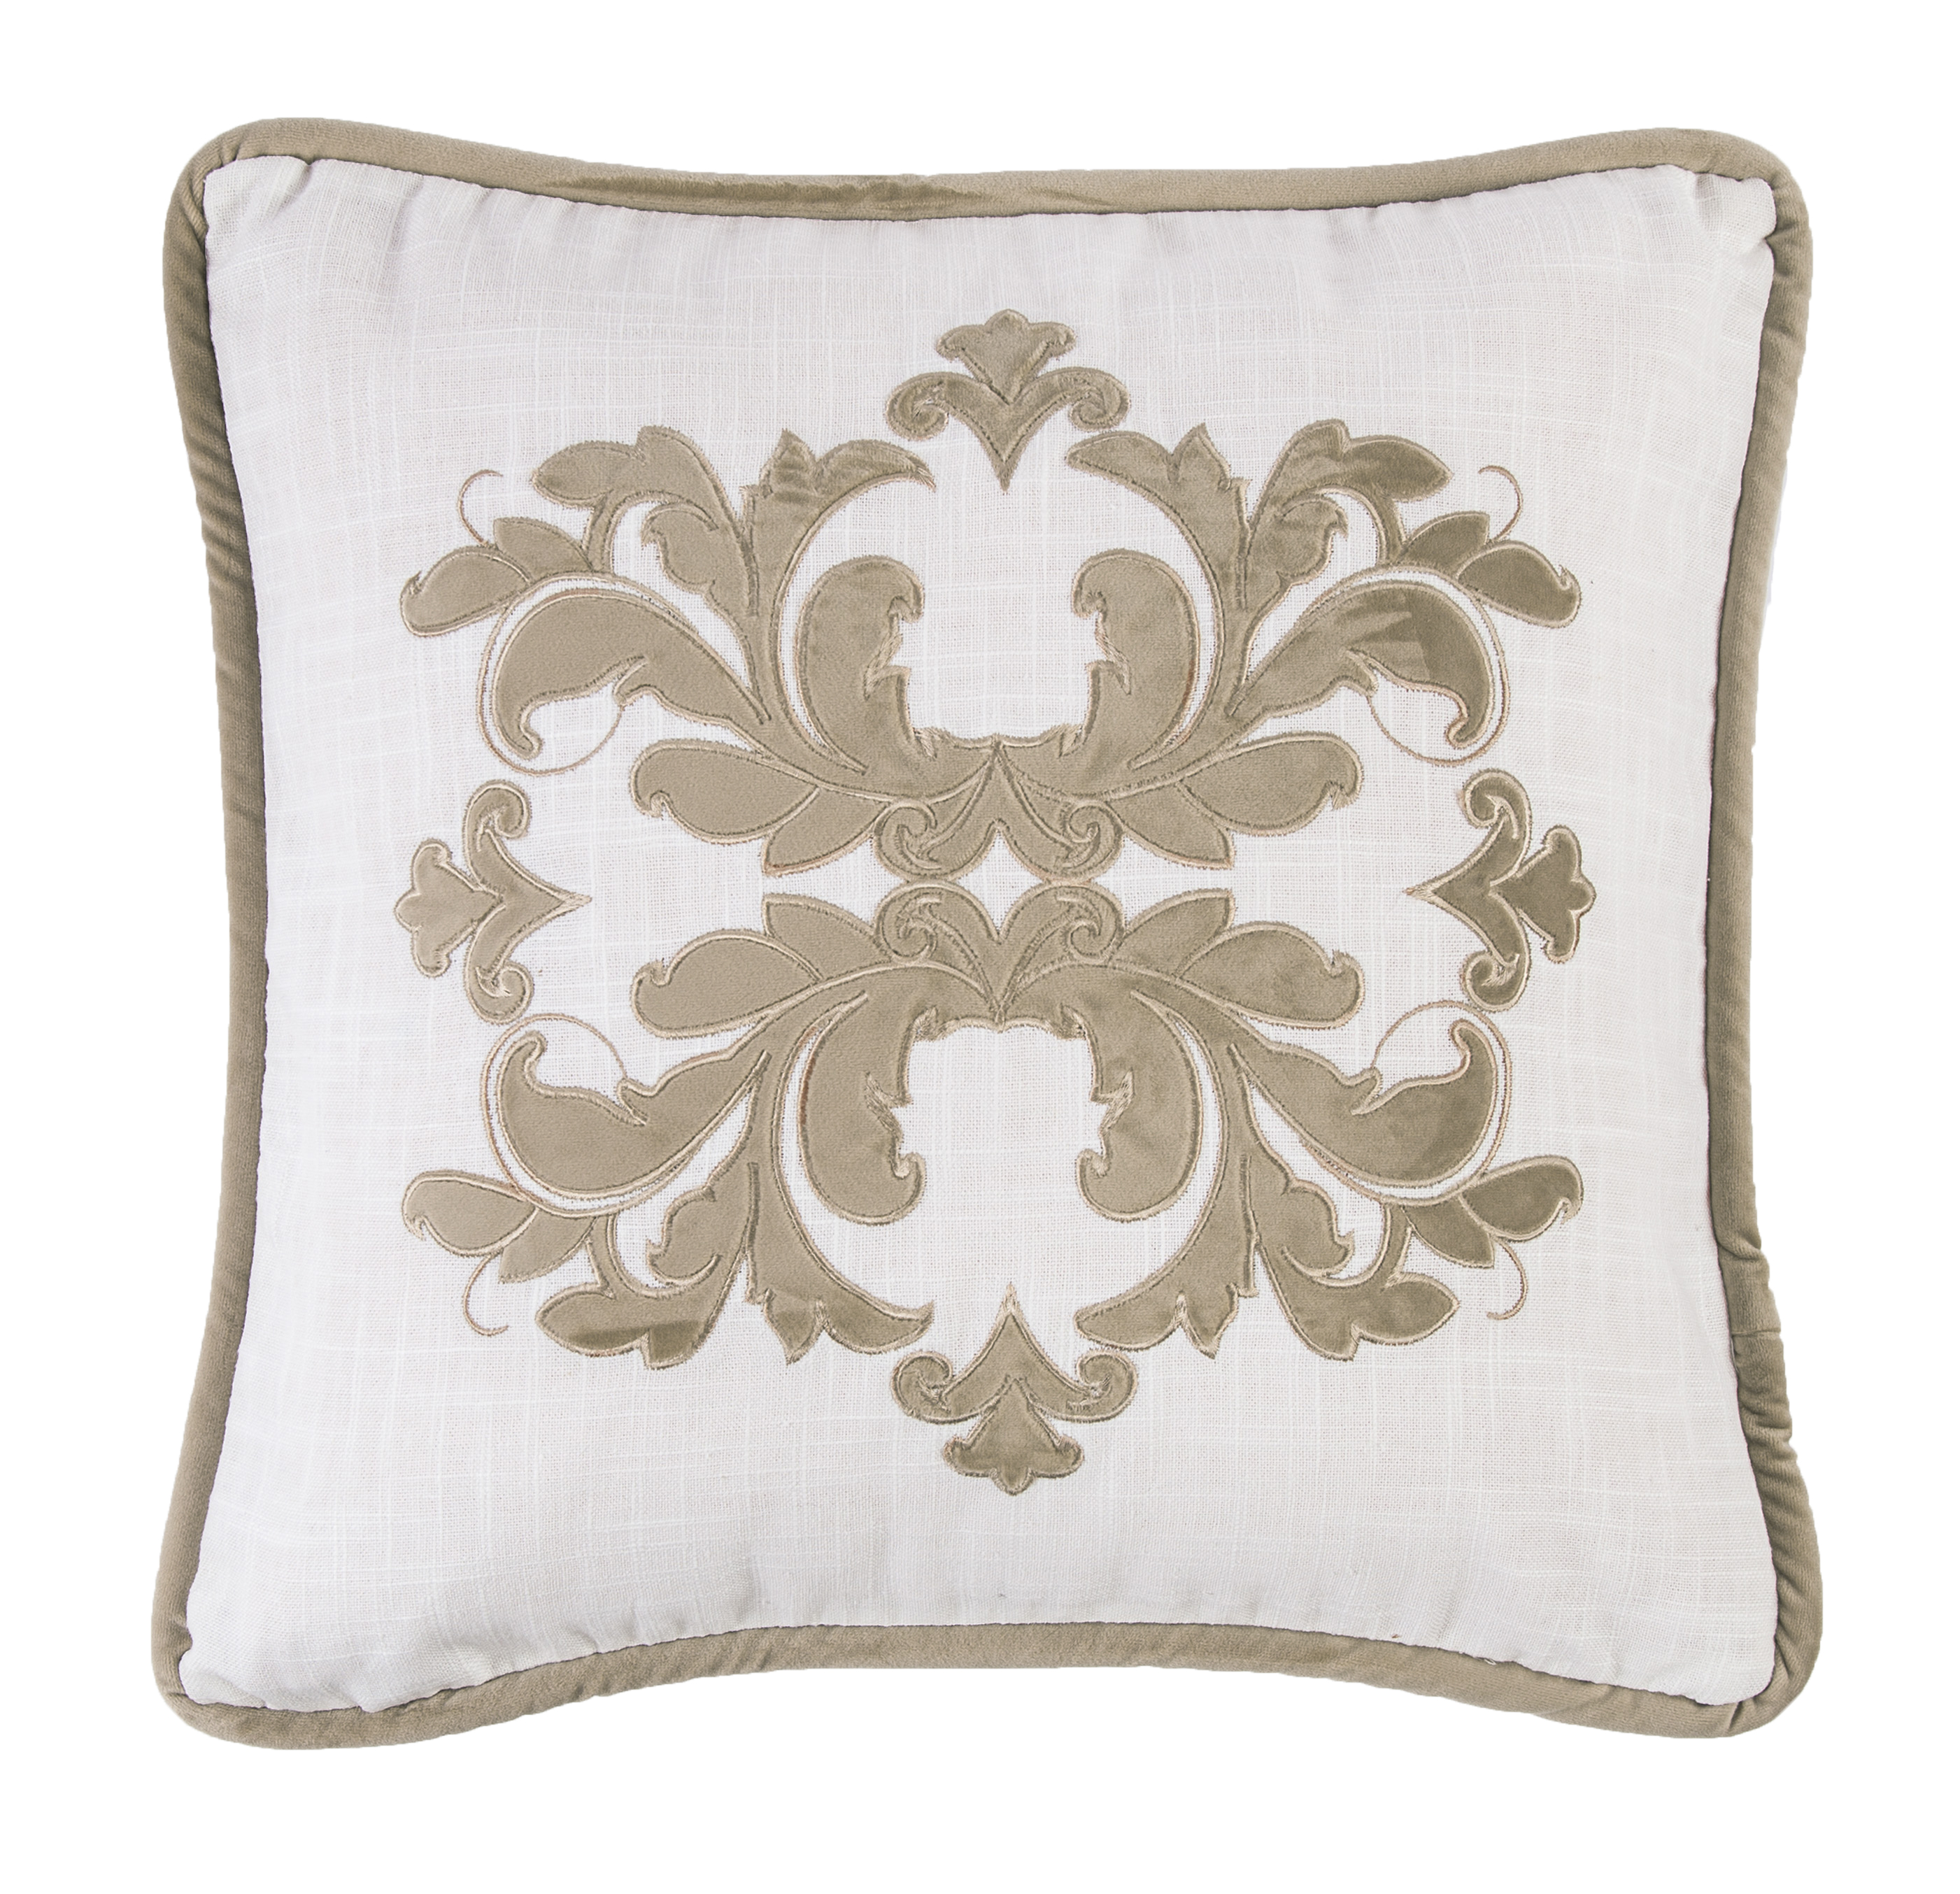 HiEnd Accents Madison Collection pillow